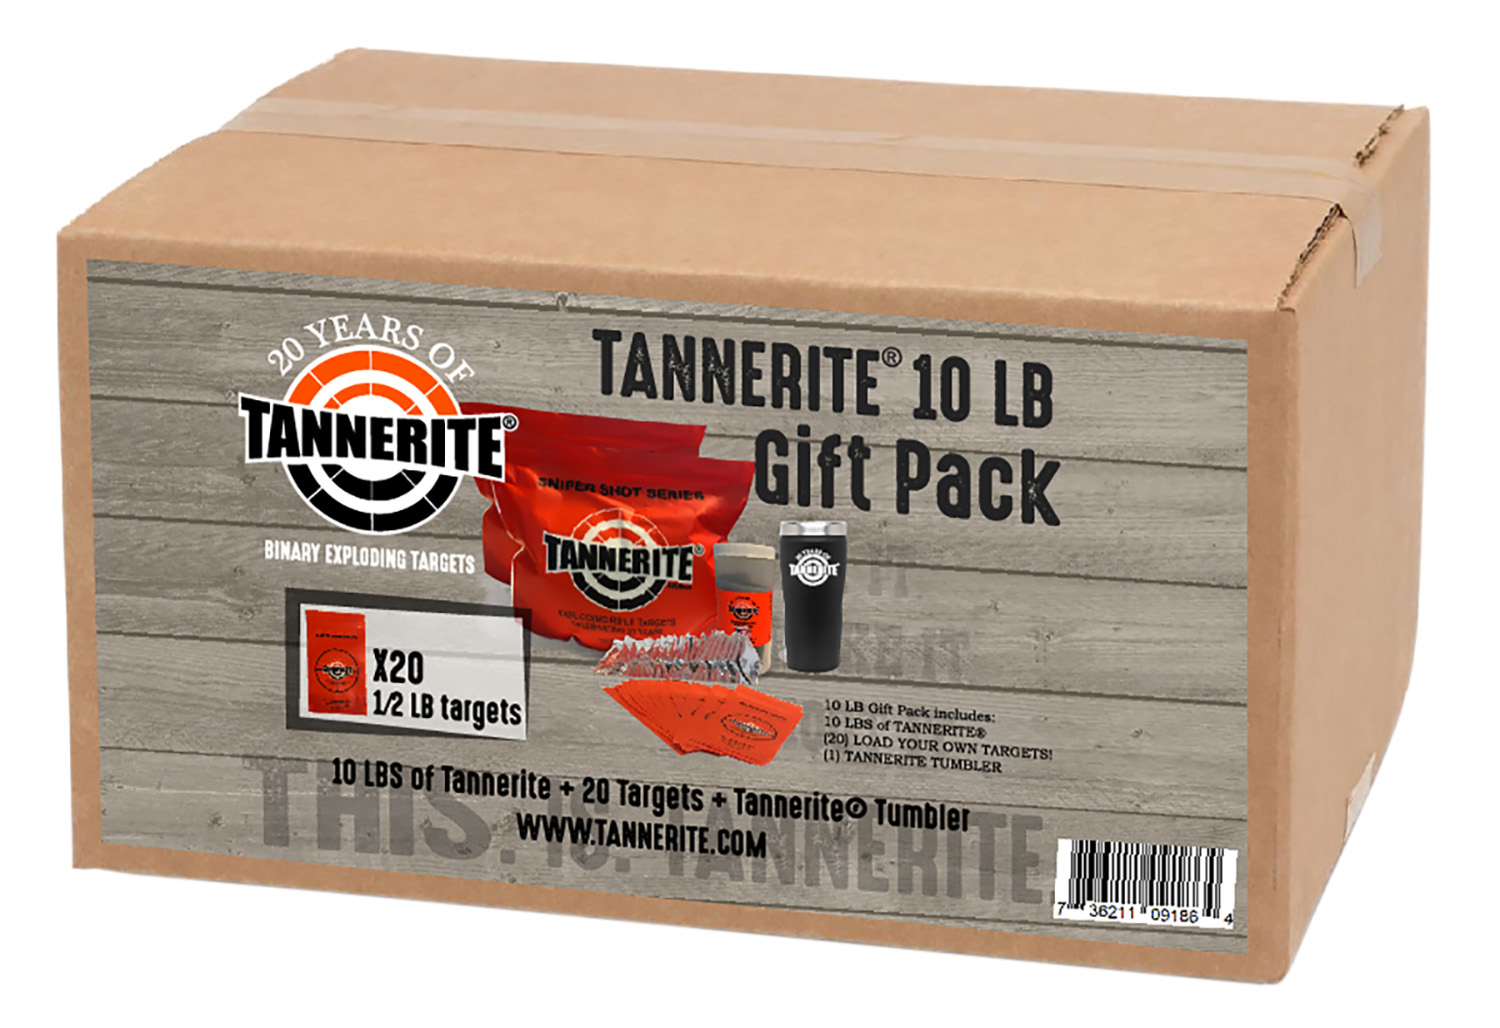 Tannerite GIFTPACK Exploding Target Gift Pack 20- 1/2 Pound Targets